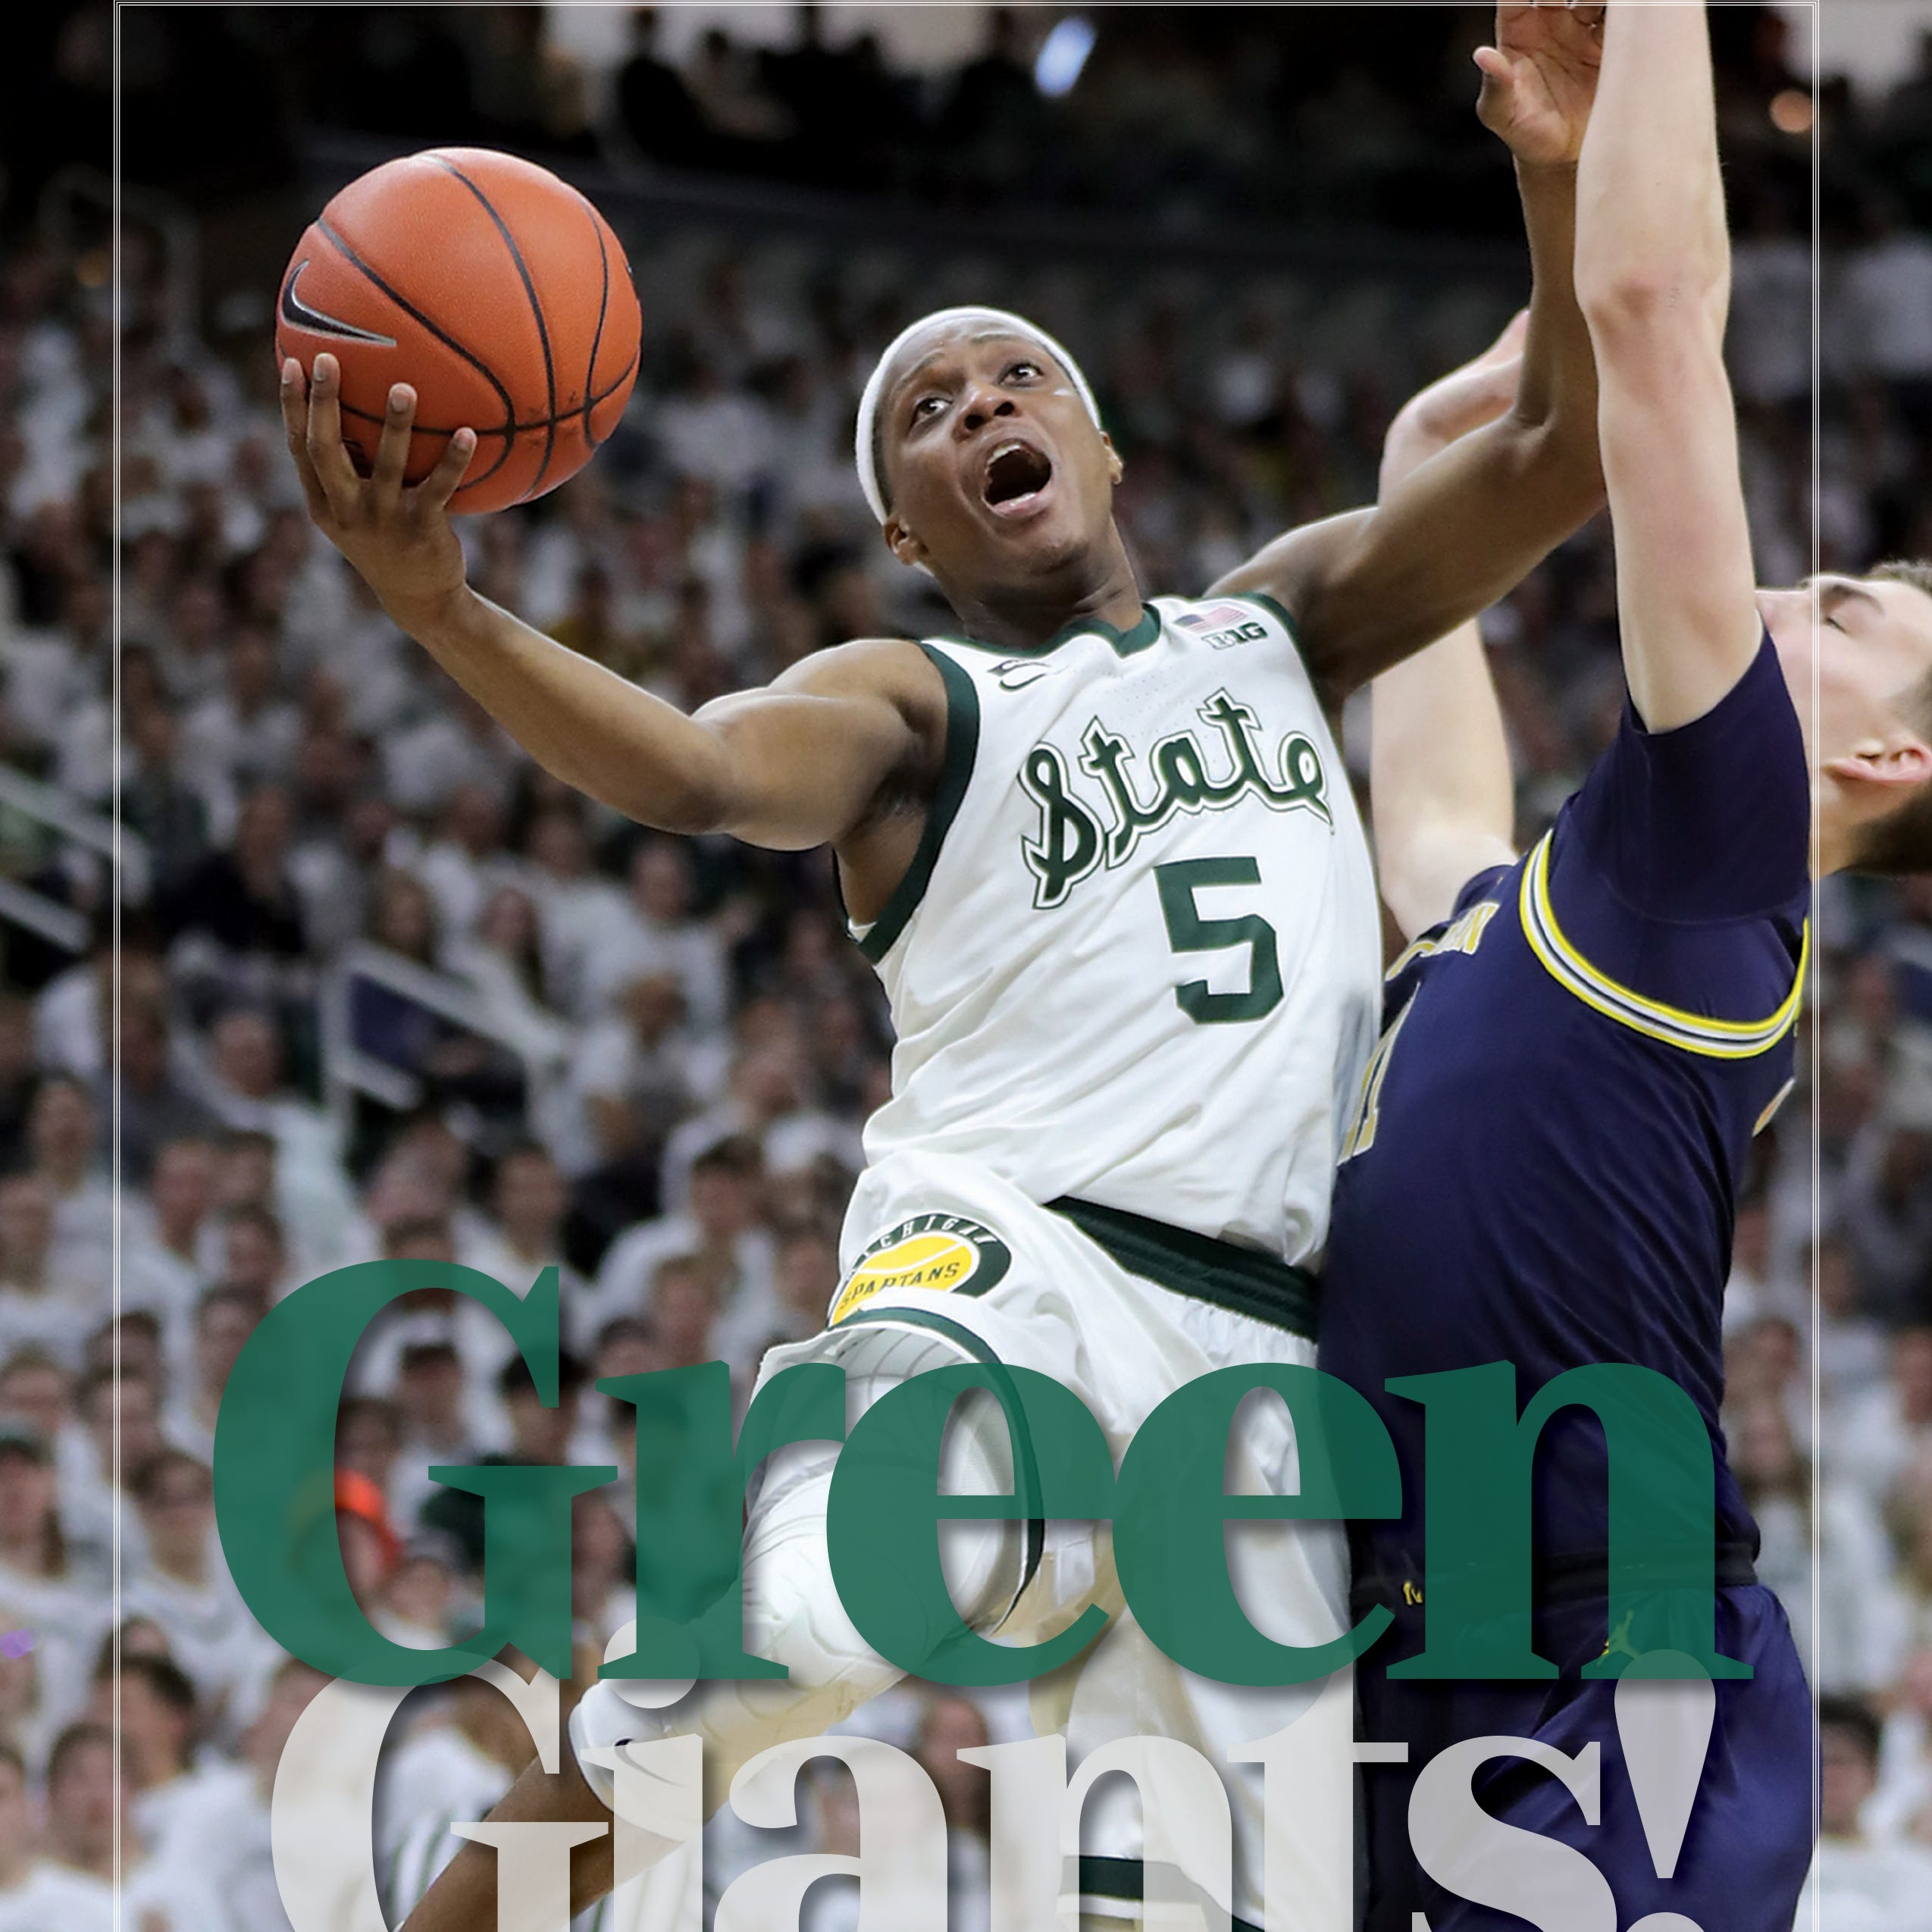 New e-book: 'Green Giants!' The Inside Story of Michigan State's 2019 Final Four Run